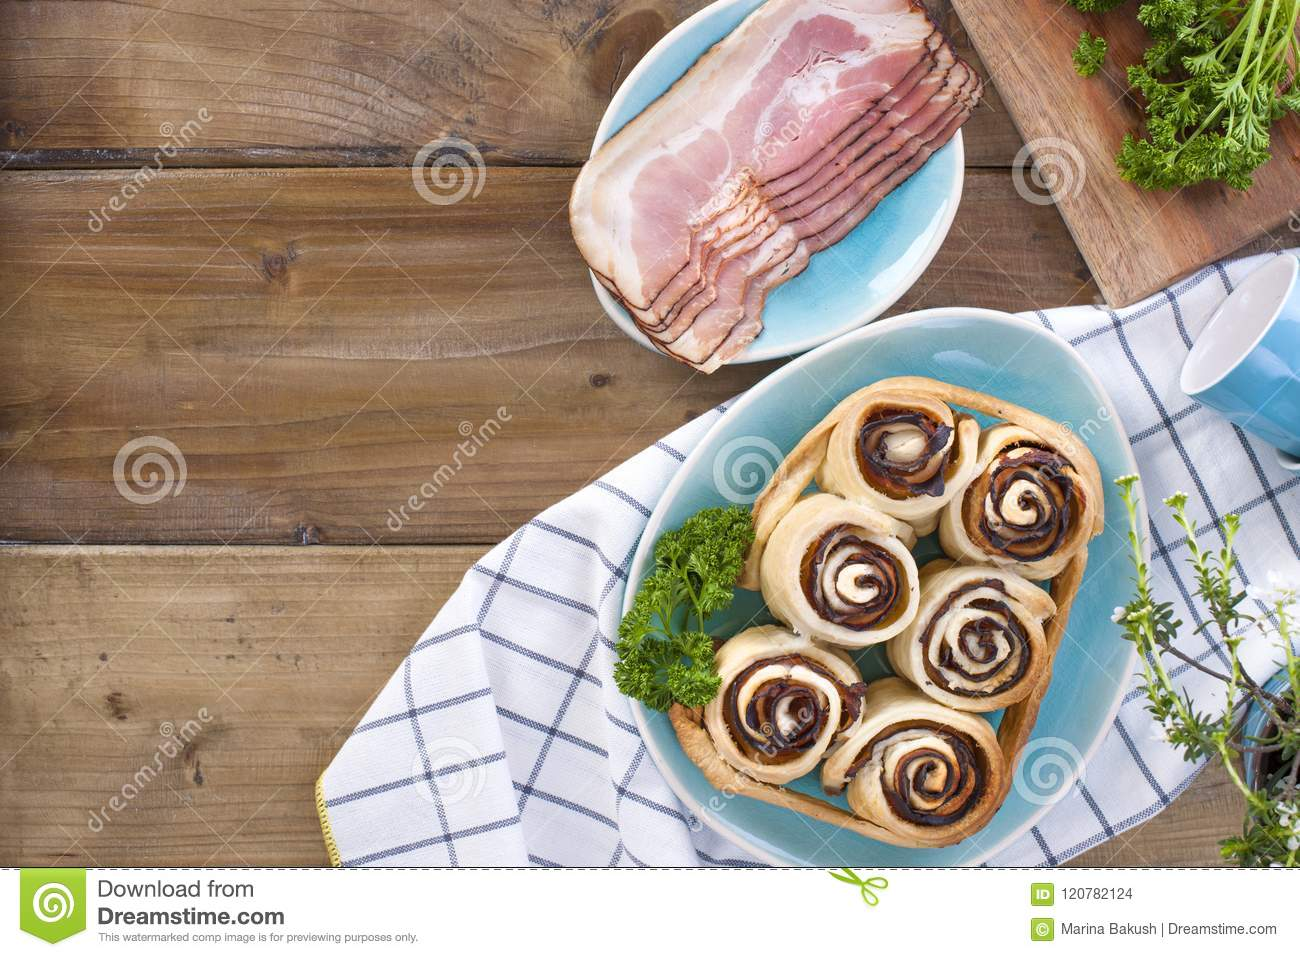 Buns with bacon and fresh herbs for lunch. Blue dishes. Wooden background and free space for text.